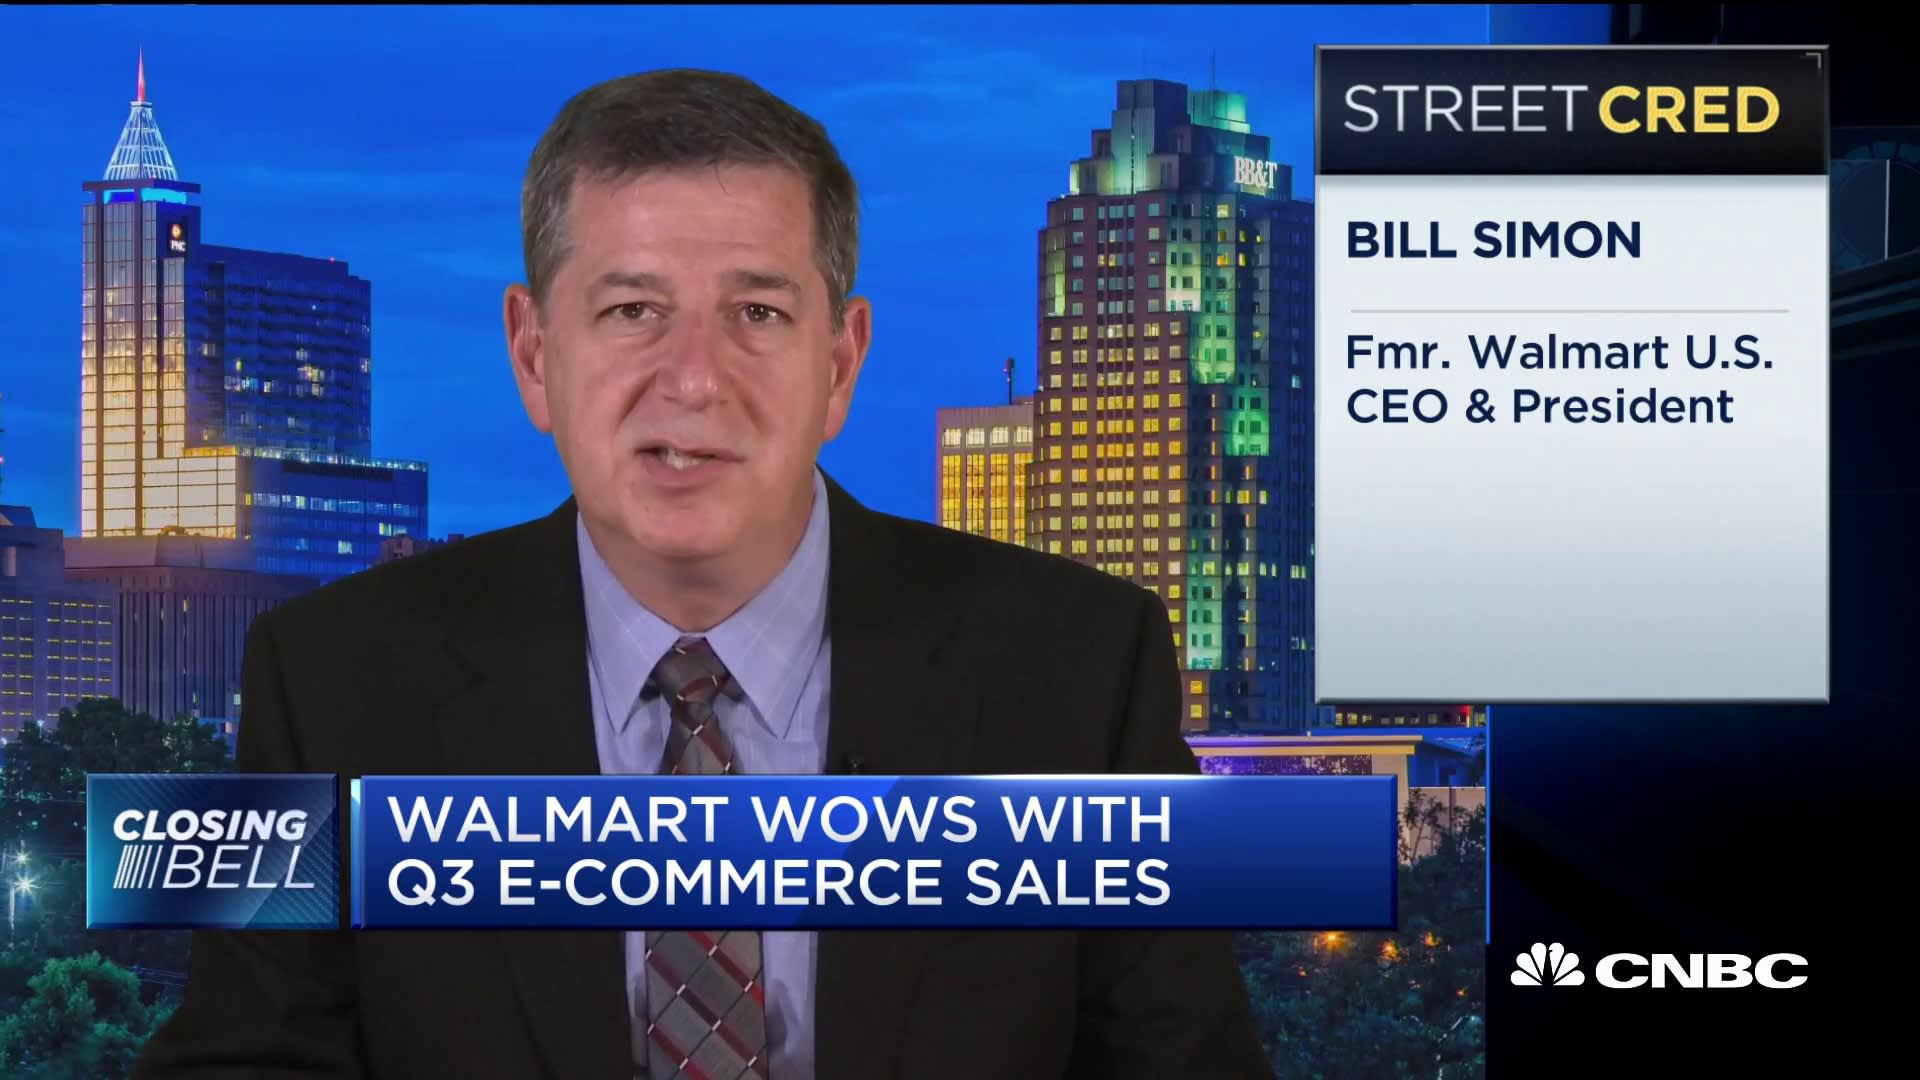 Fmr. Walmart CEO: Company's doing exactly what they said they'd do